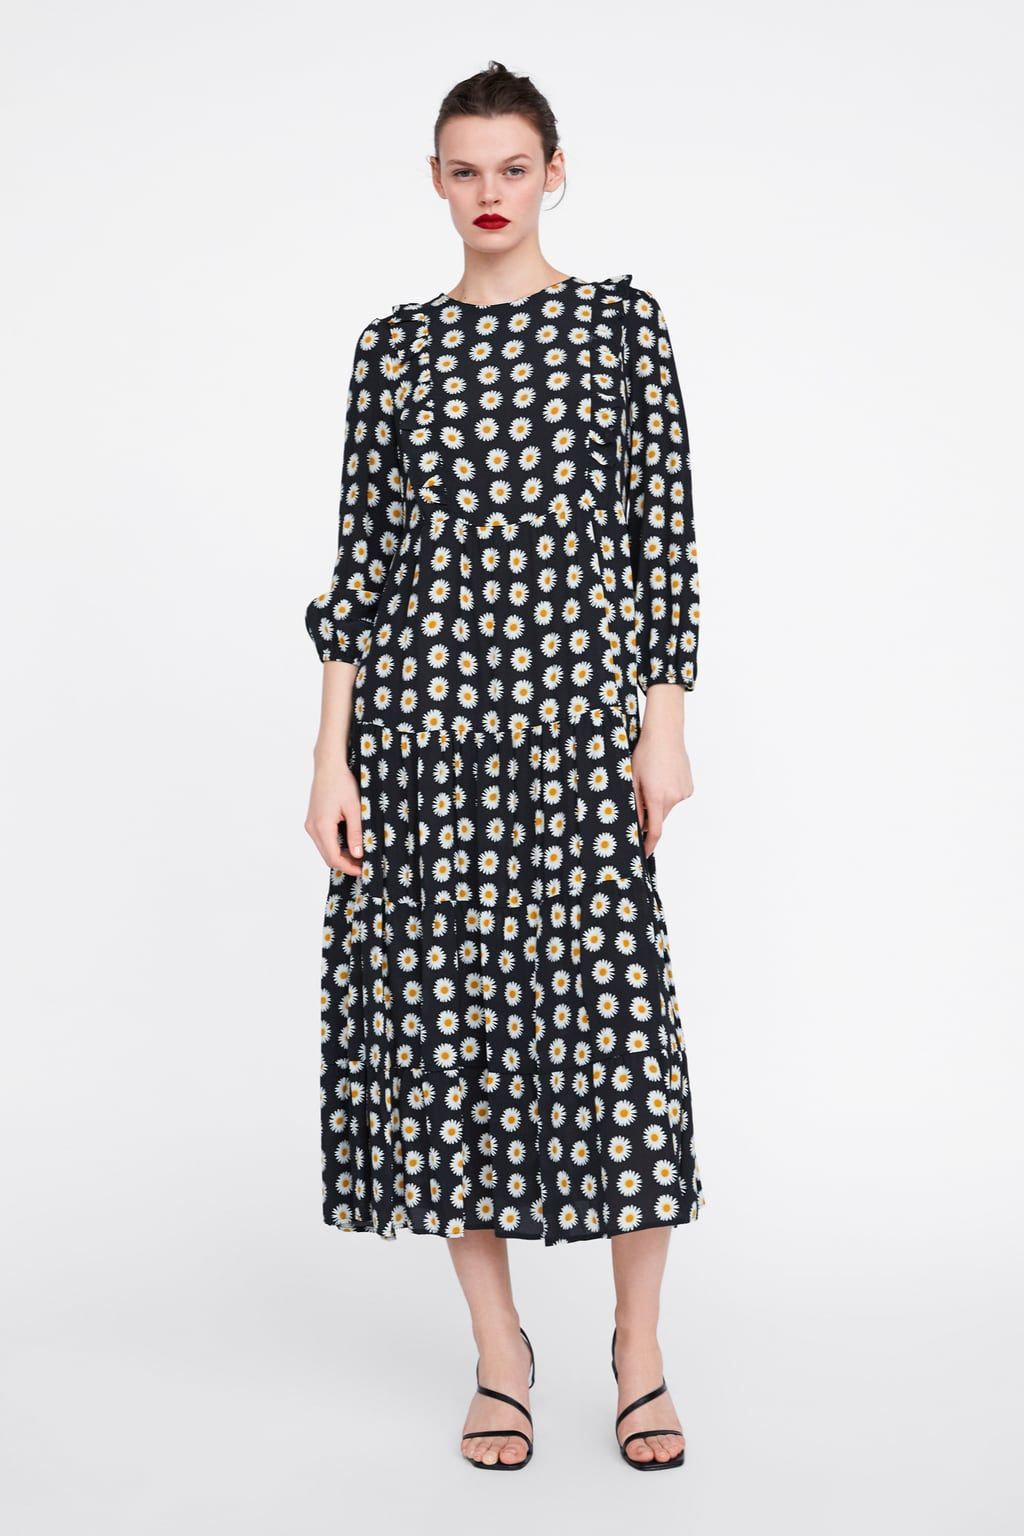 b754789d RUFFLED FLORAL PRINT DRESS from Zara | The Best of Zara in 2019 ...